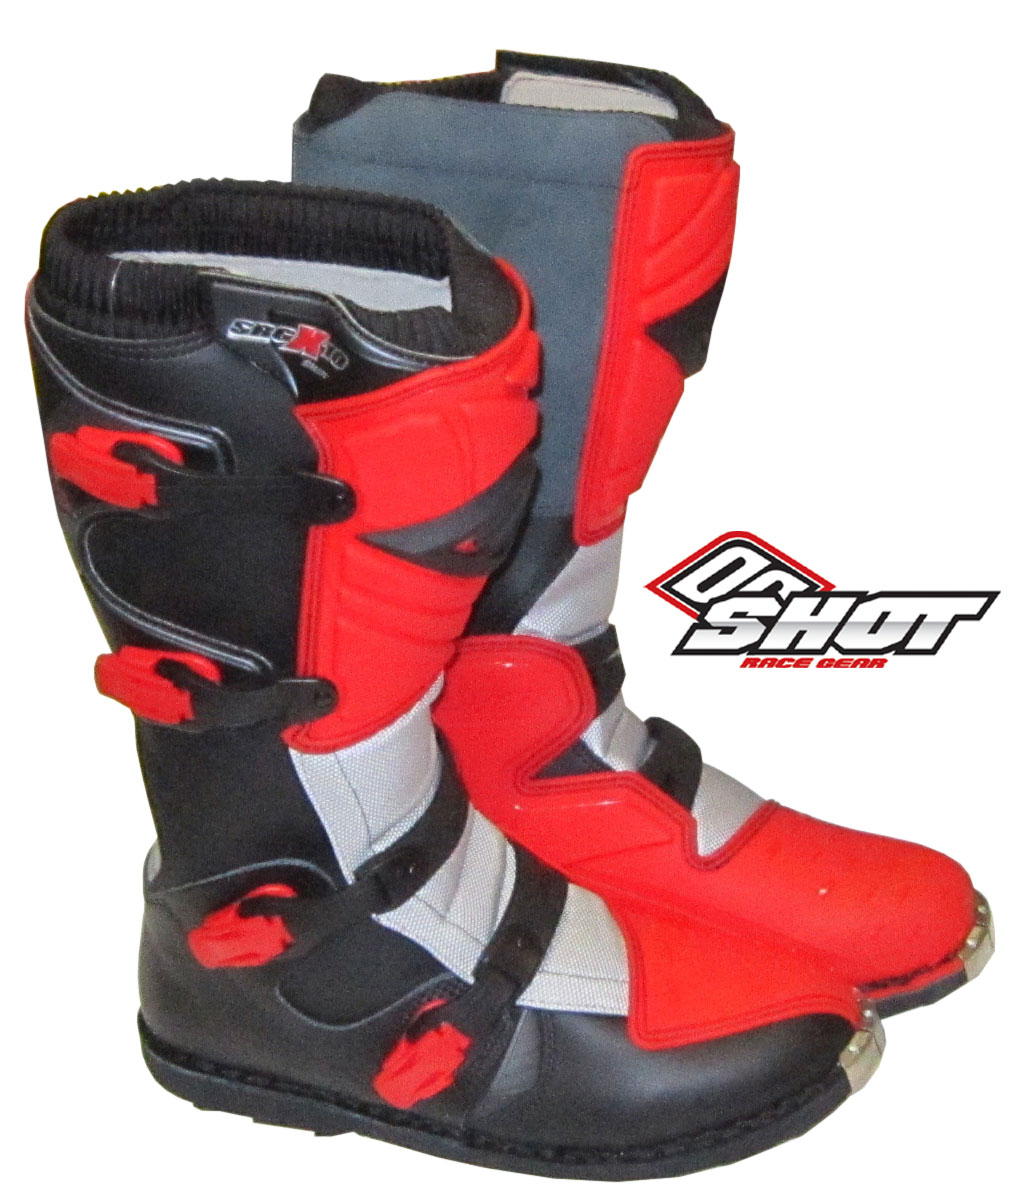 SHOT BOTTES SRG X10 rouge Taille 41.48